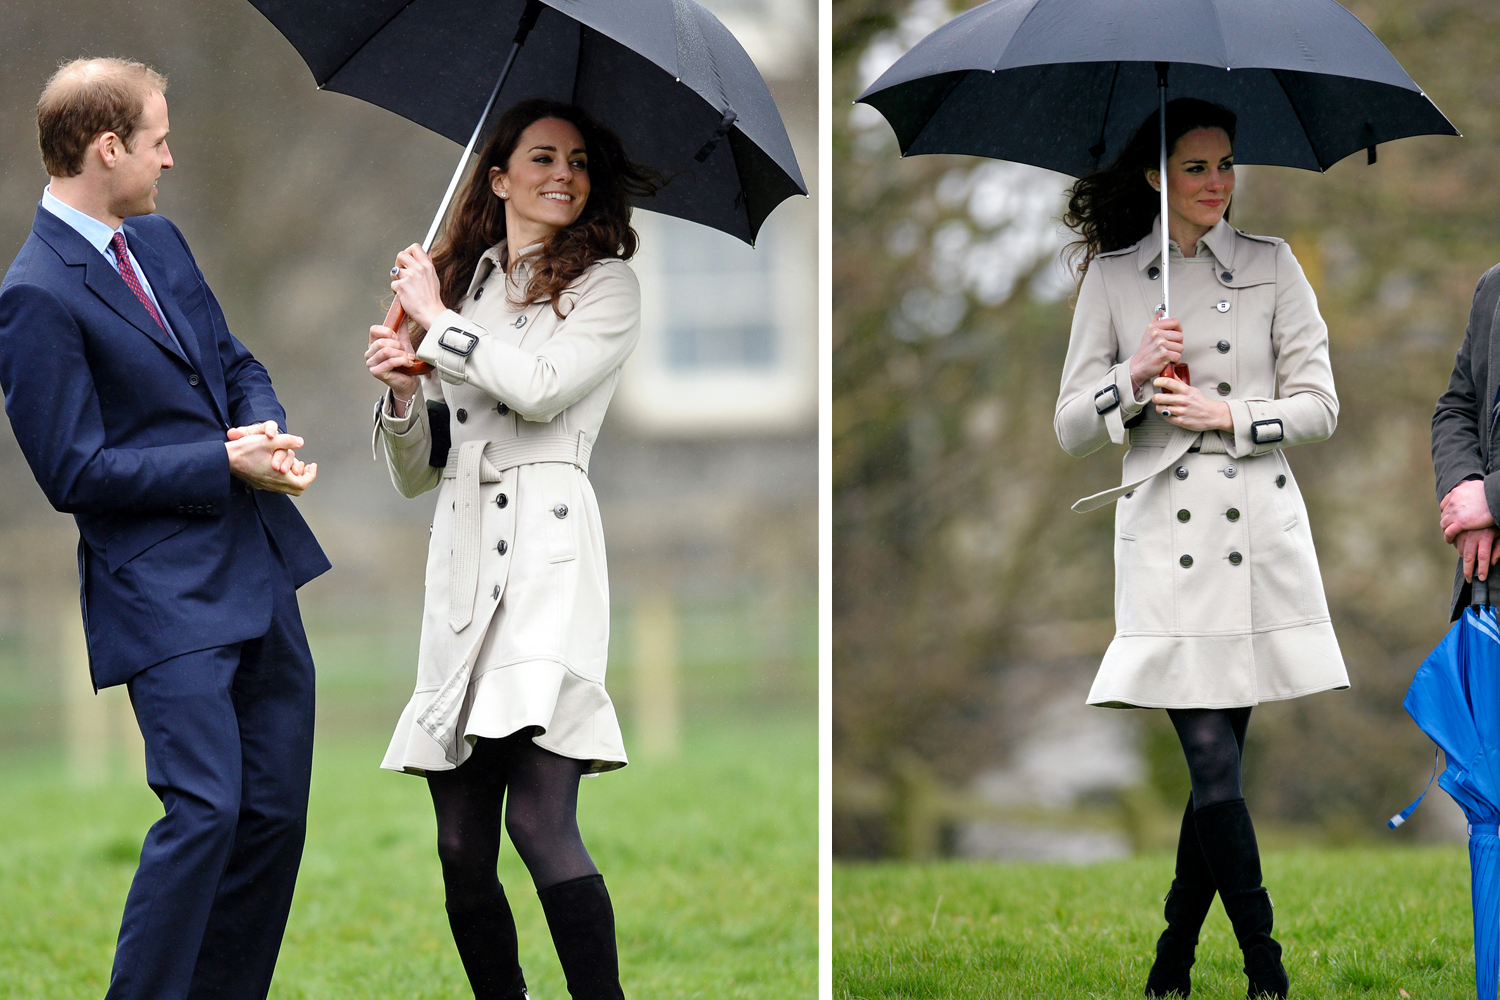 Kate Middleton Wears A Chic Skirt Suit Visiting a Children's Hospital - Woman's World